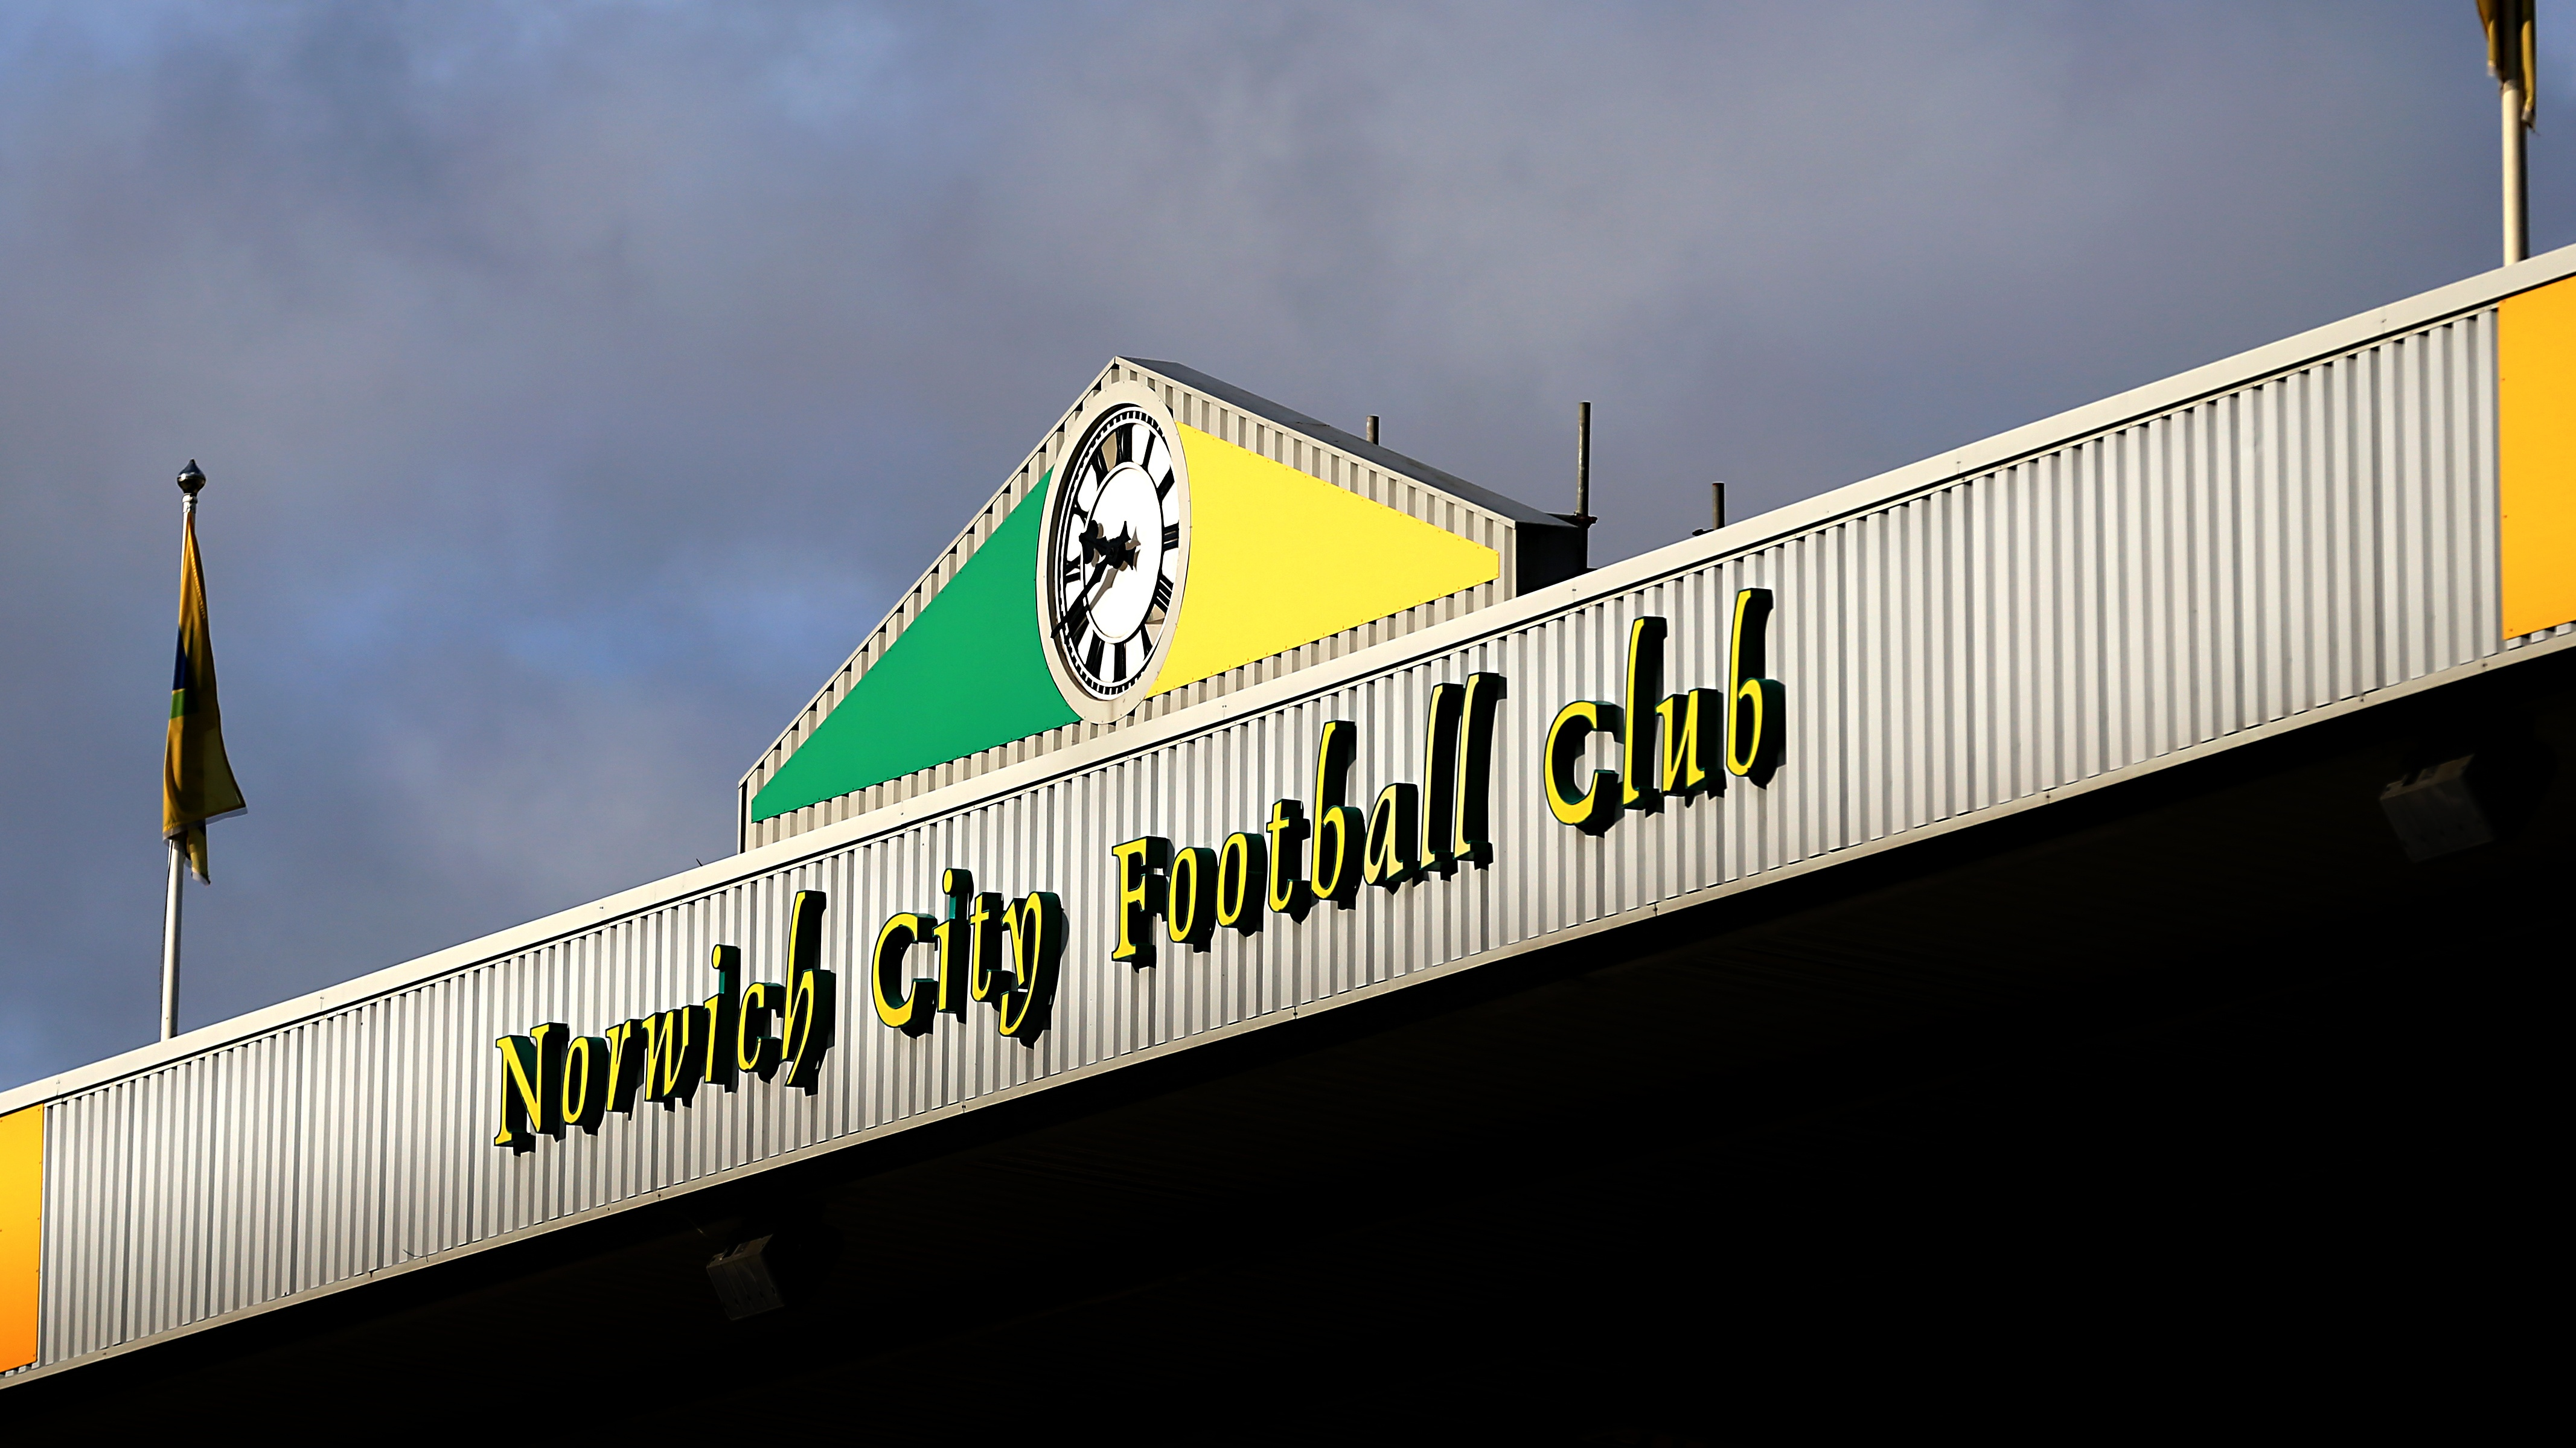 Norwich City's Carrow Road stadium